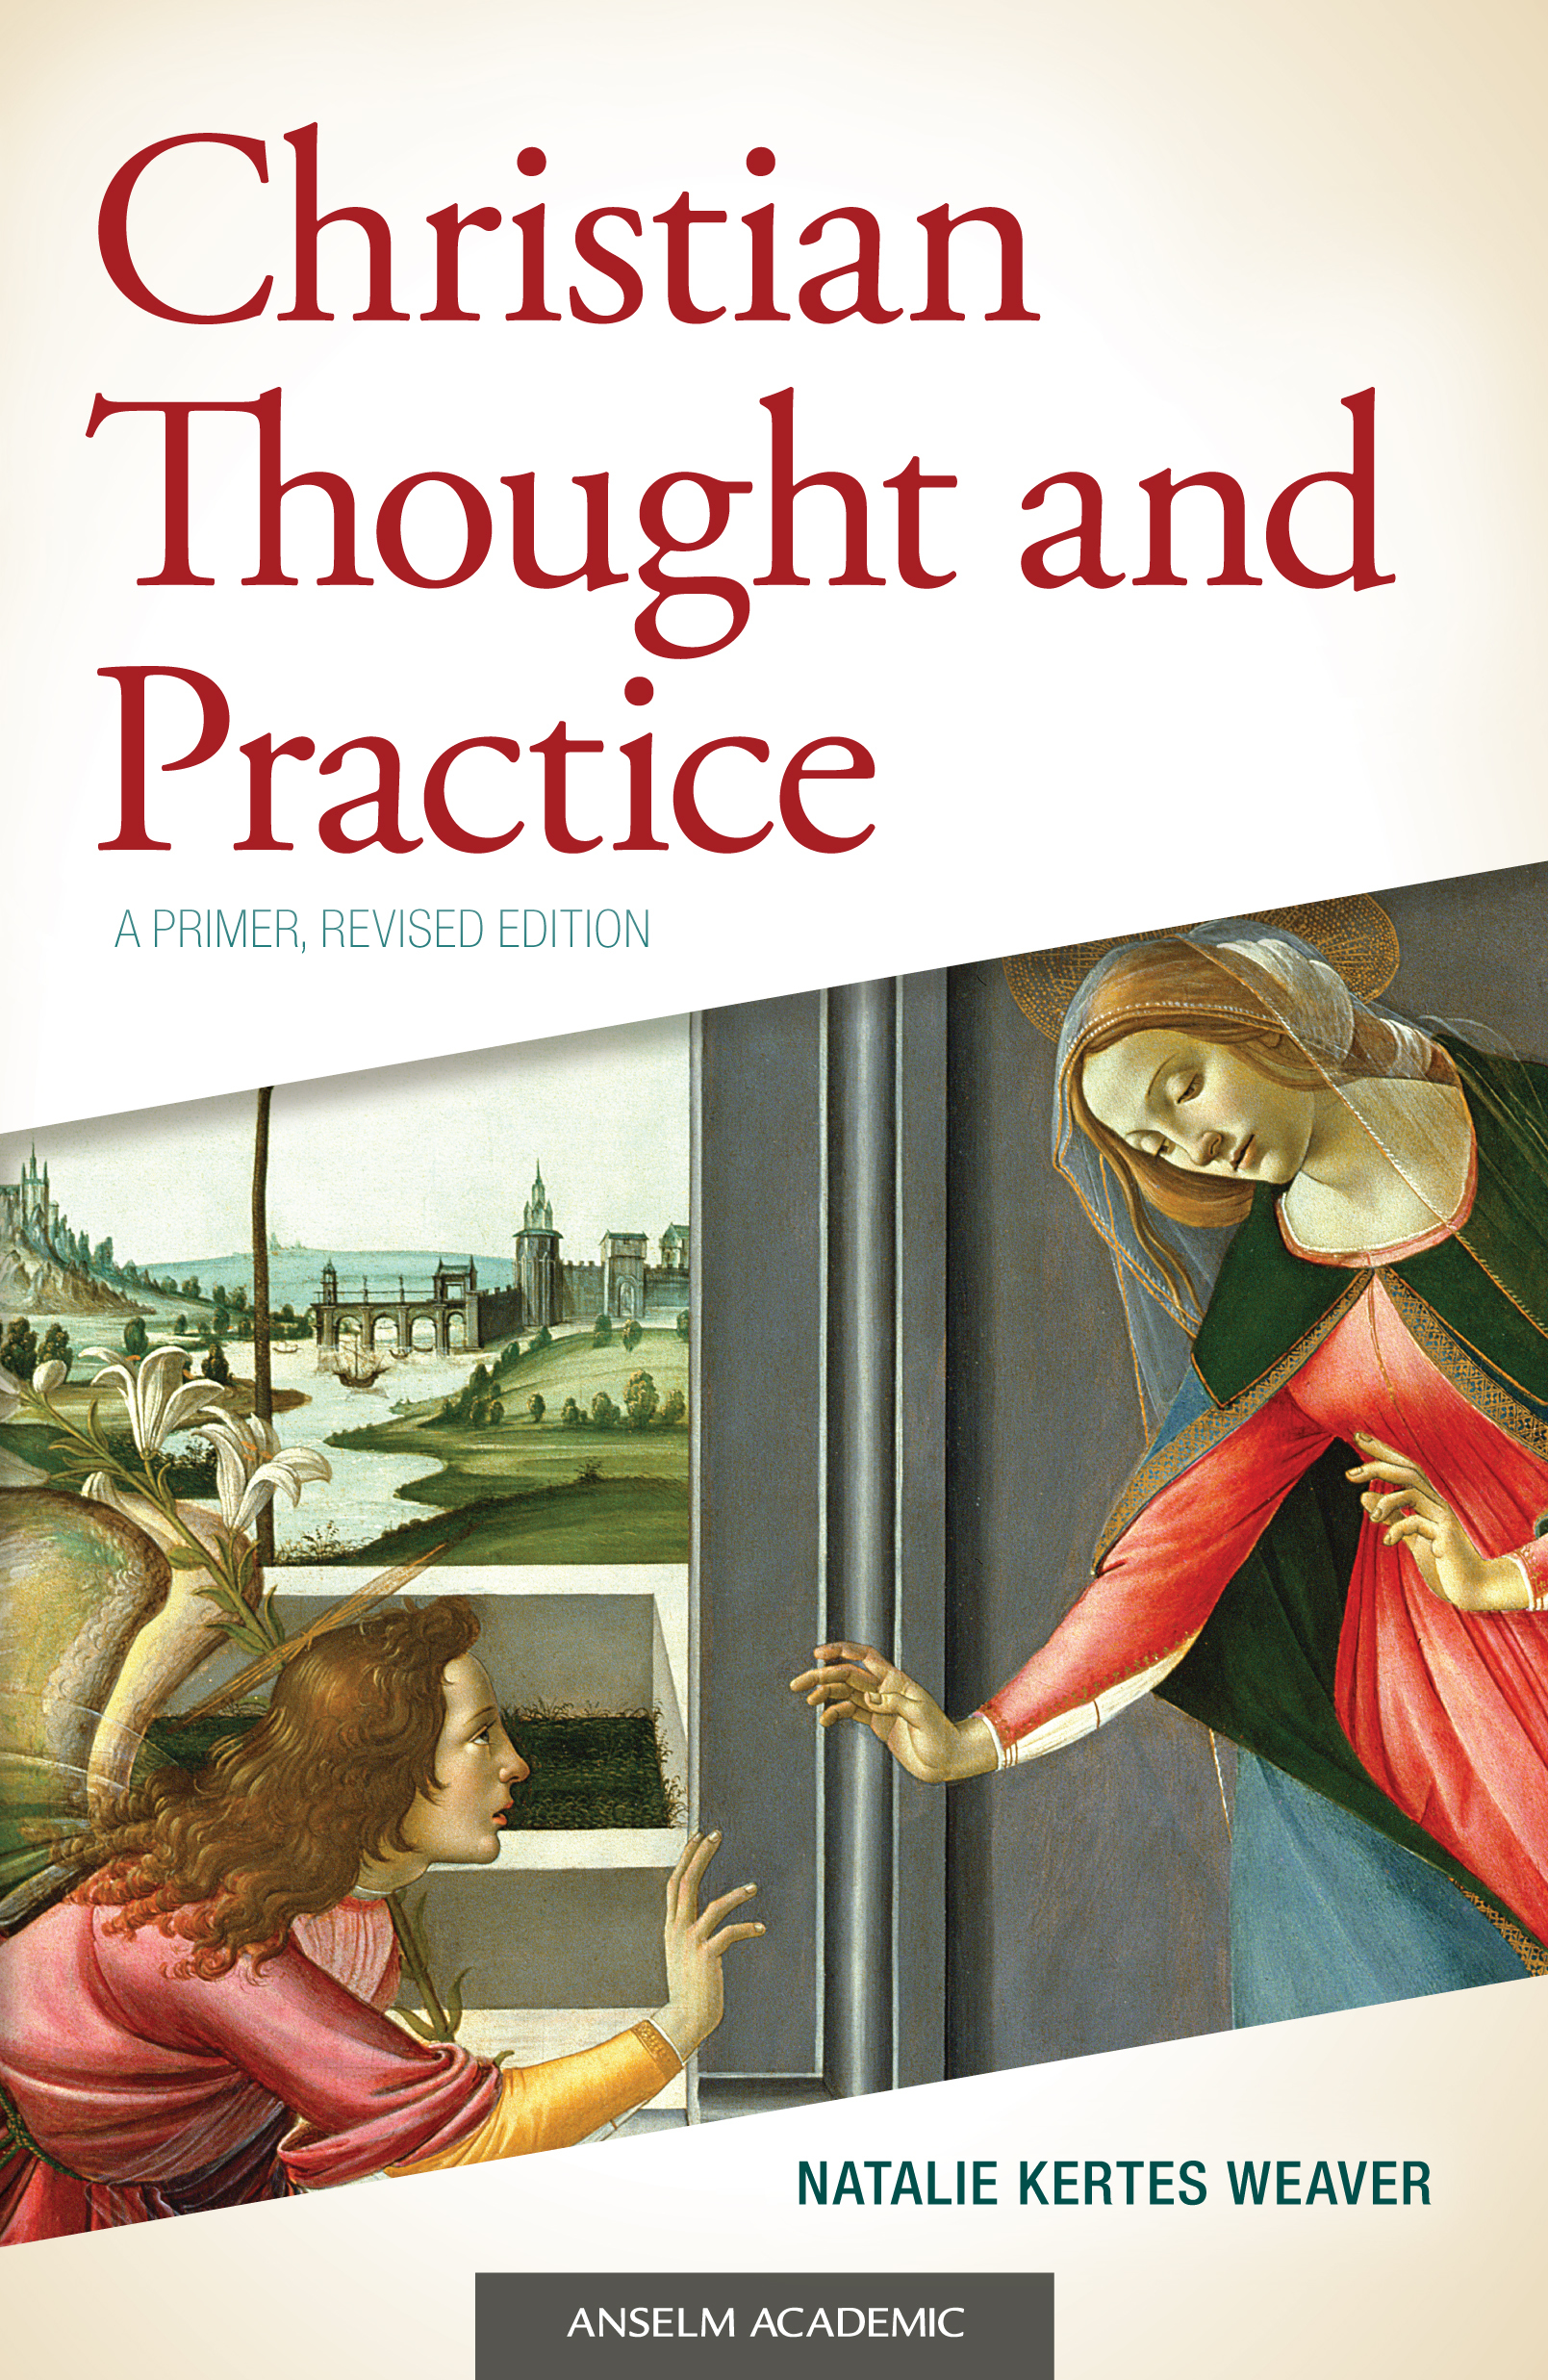 Christian Thought and Practice: A Primer - Revised Edition